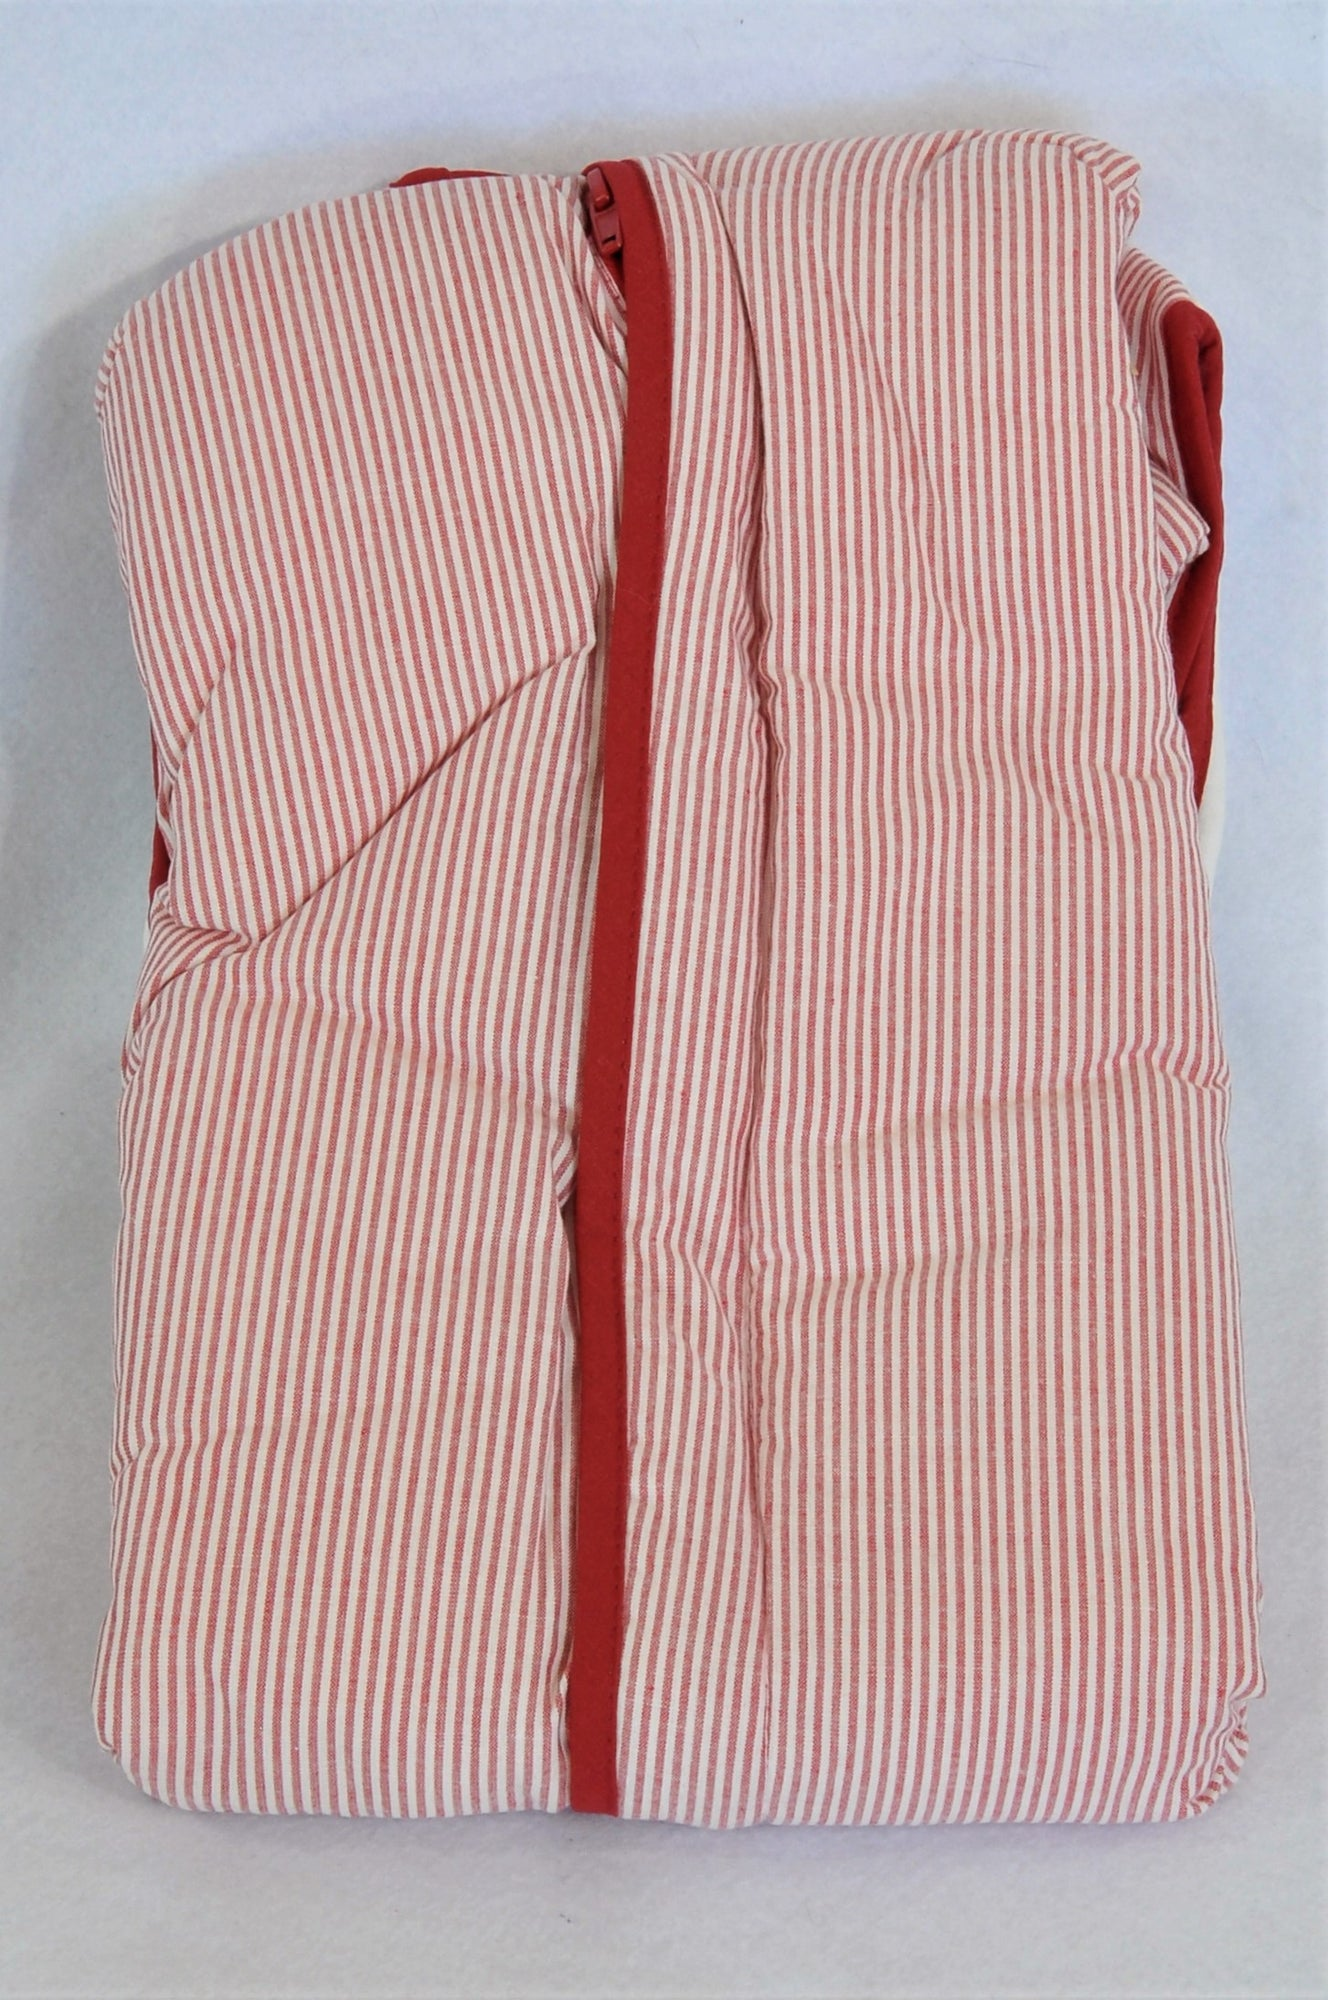 New Ikea Fabler Red Pinstripe 2.5 Tog Sleep Sack Unisex 6-18 months